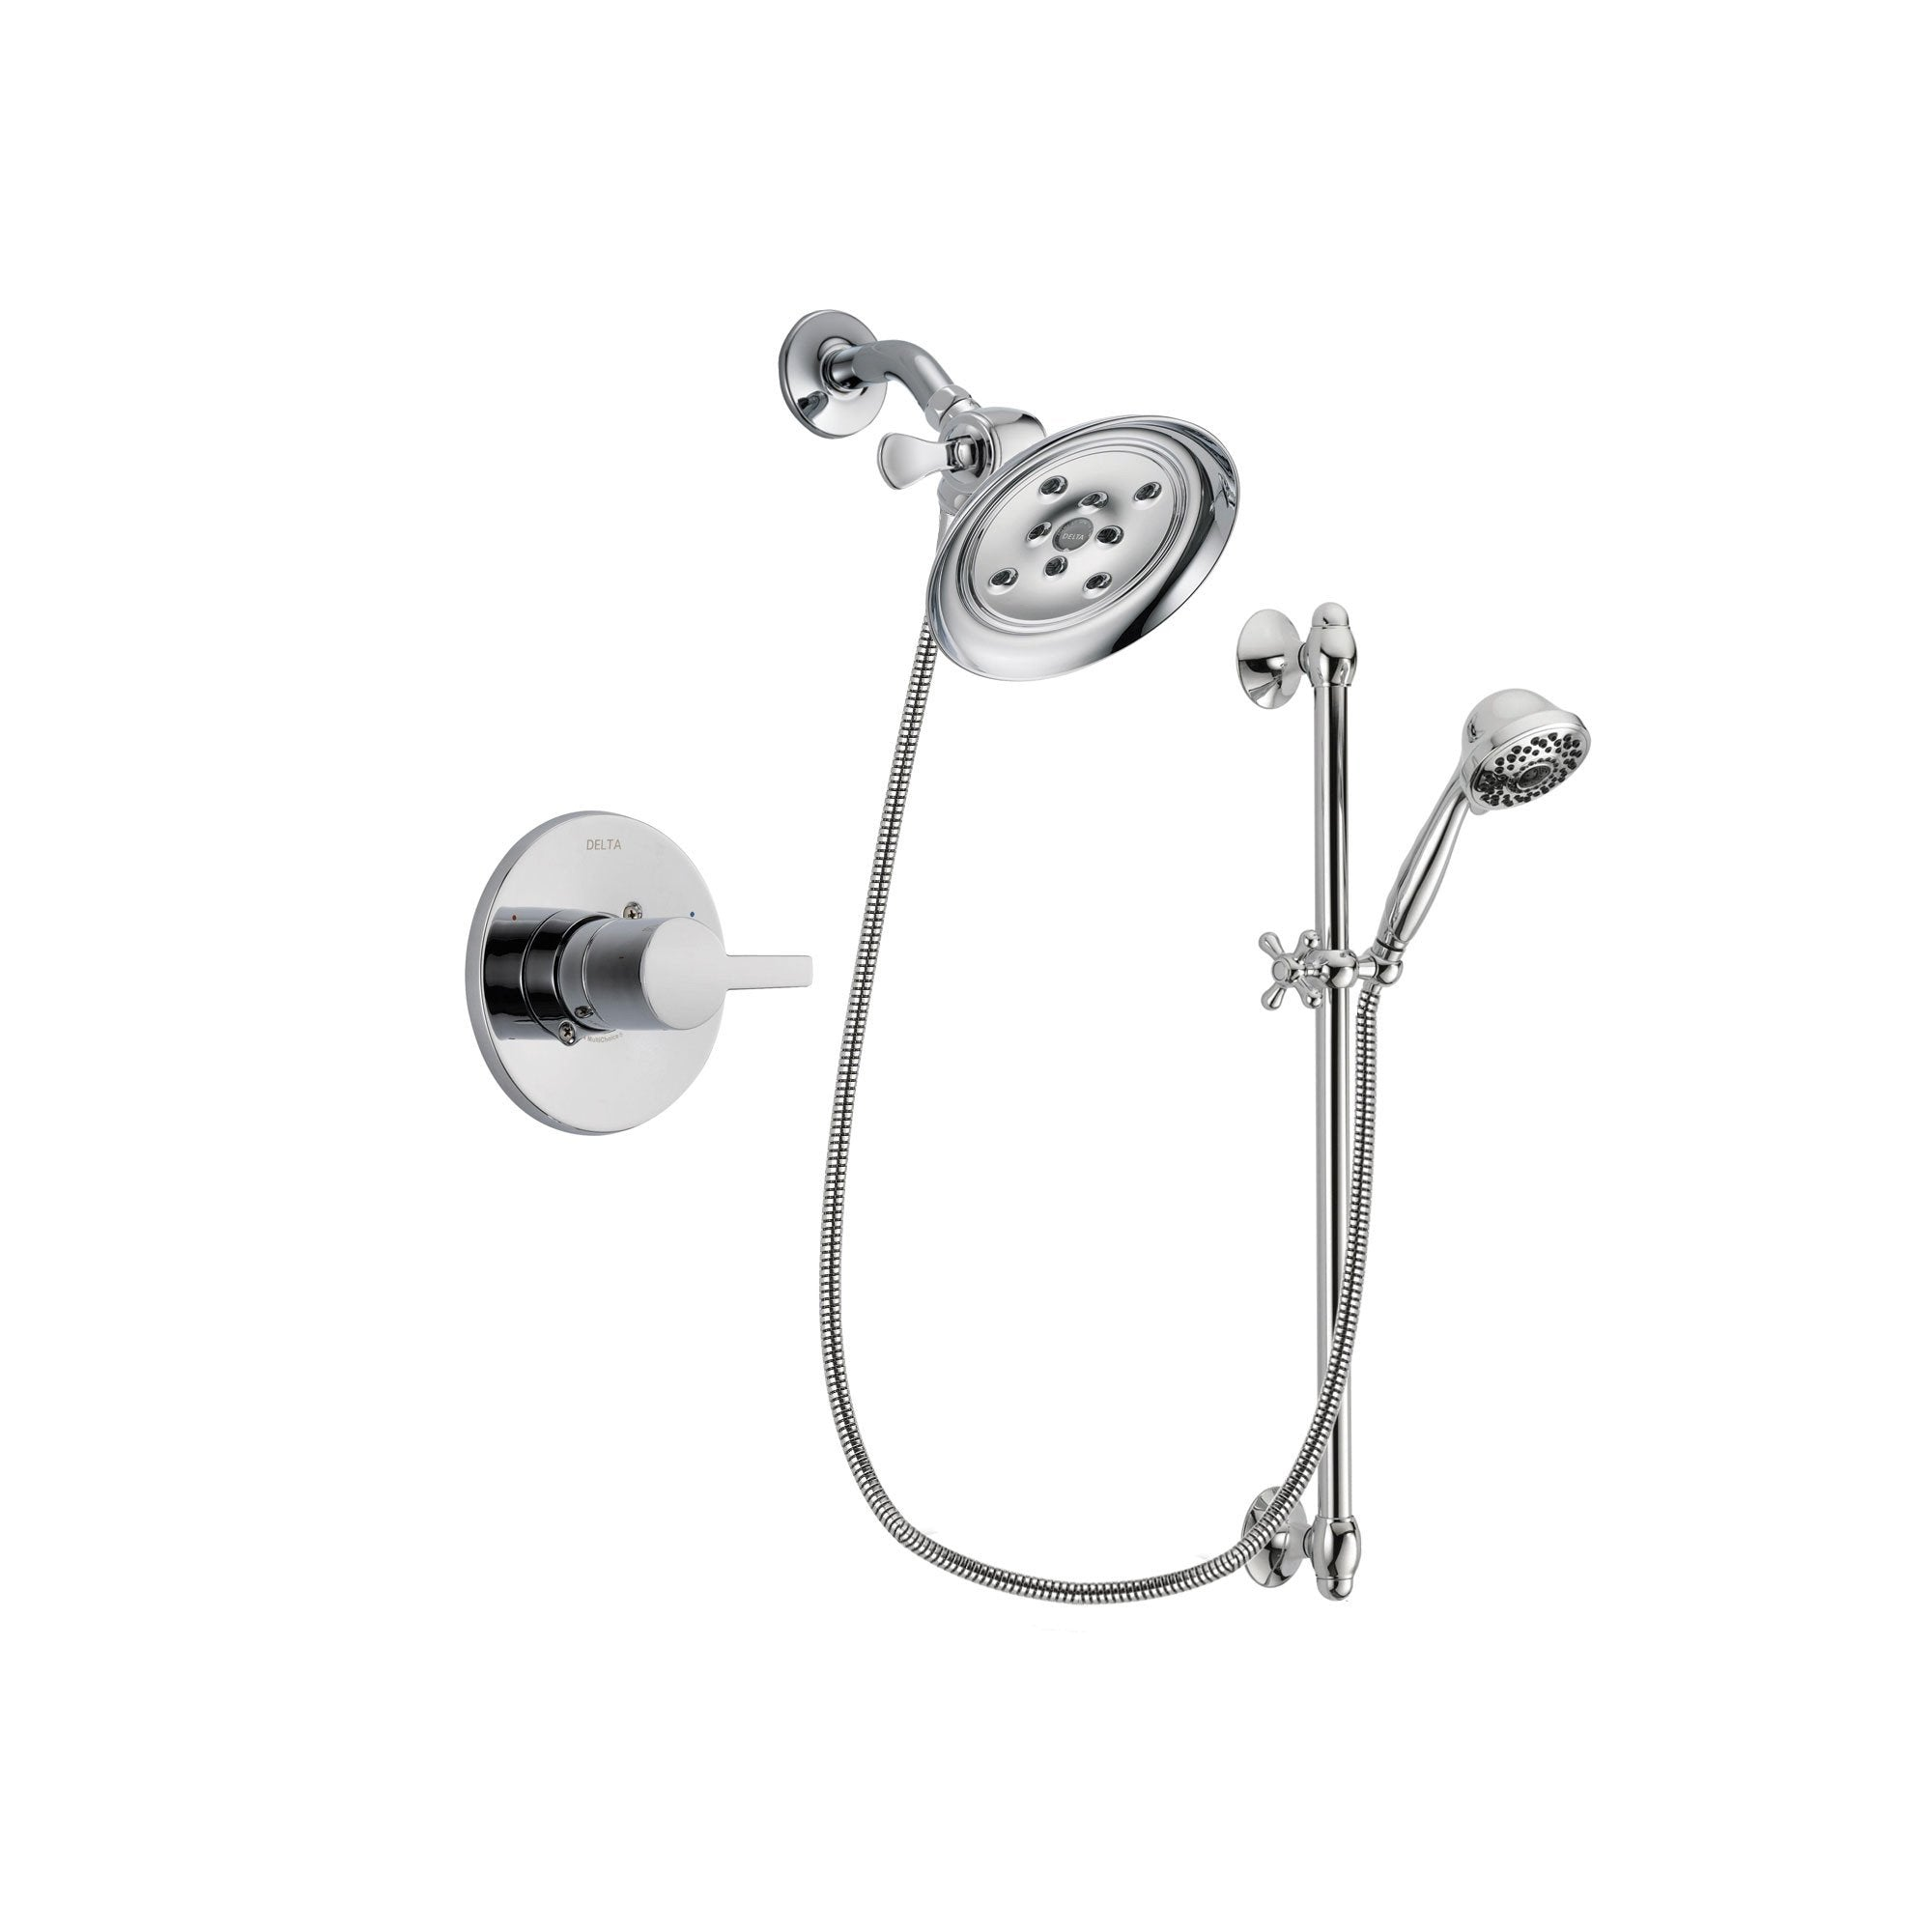 Delta Compel Chrome Shower Faucet System w/ Shower Head and Hand Shower DSP0644V